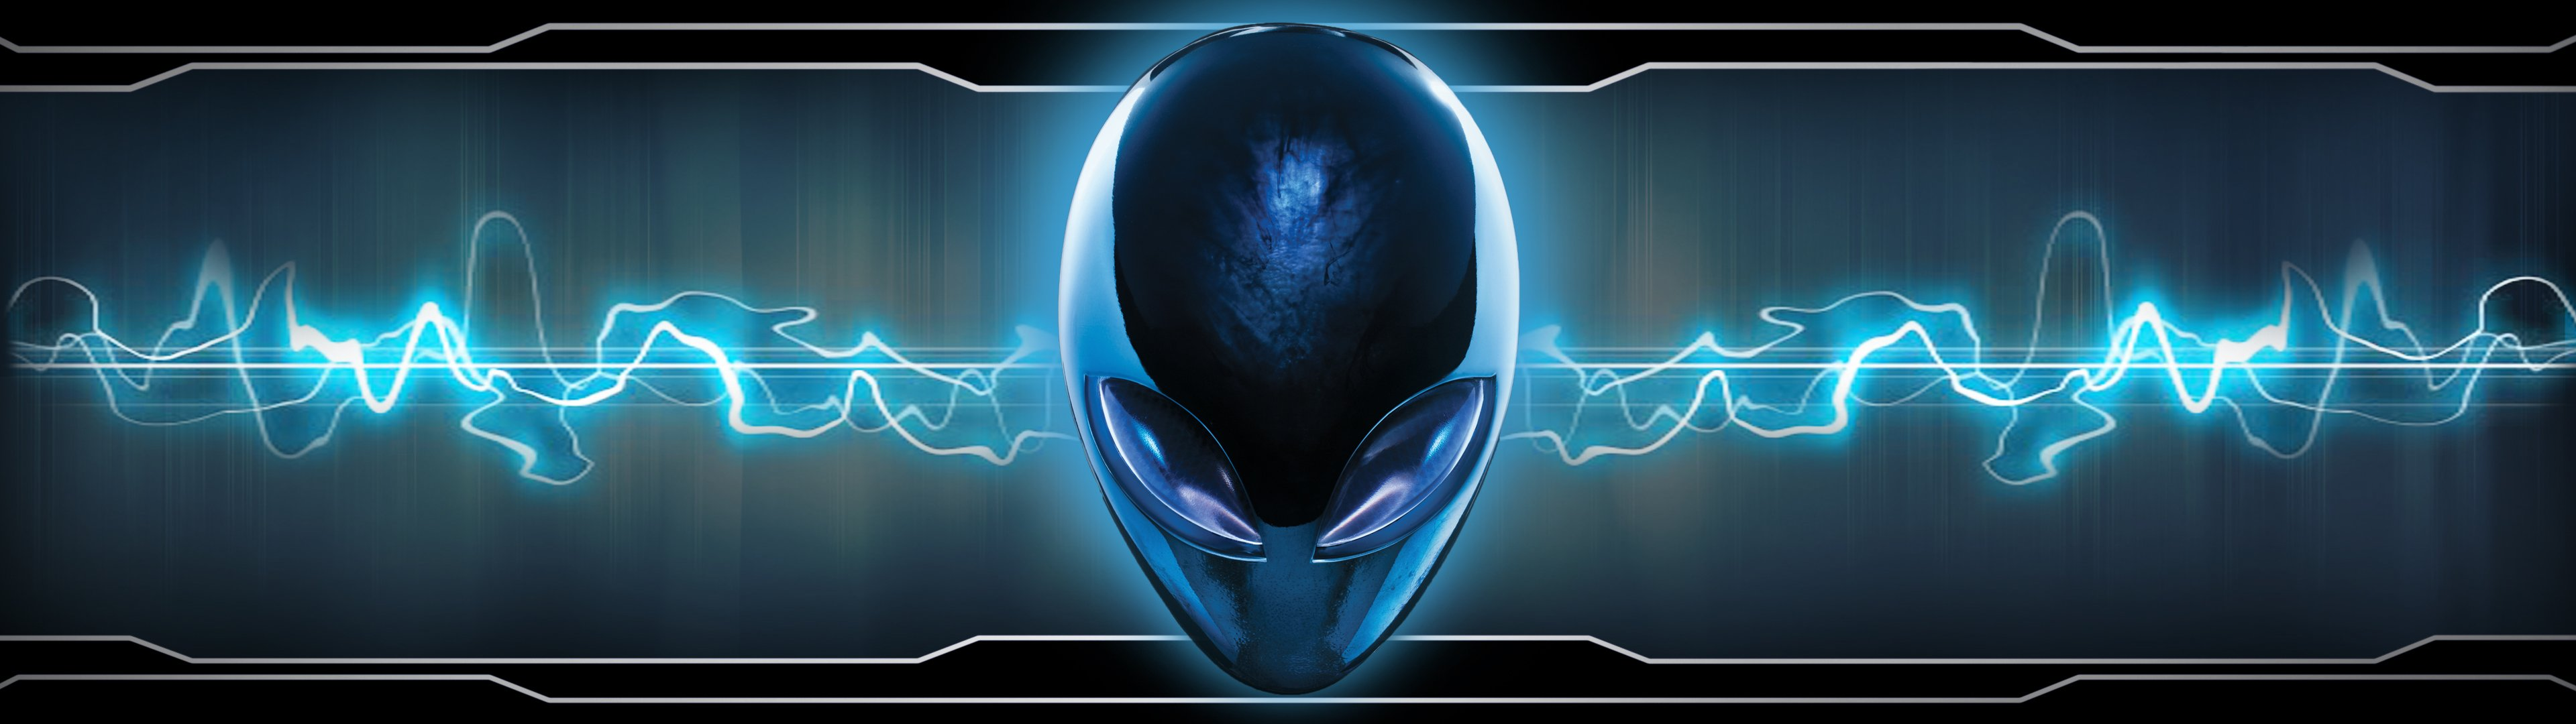 dual monitor scrren multi multiple alien alienware wallpaper 3840x1080